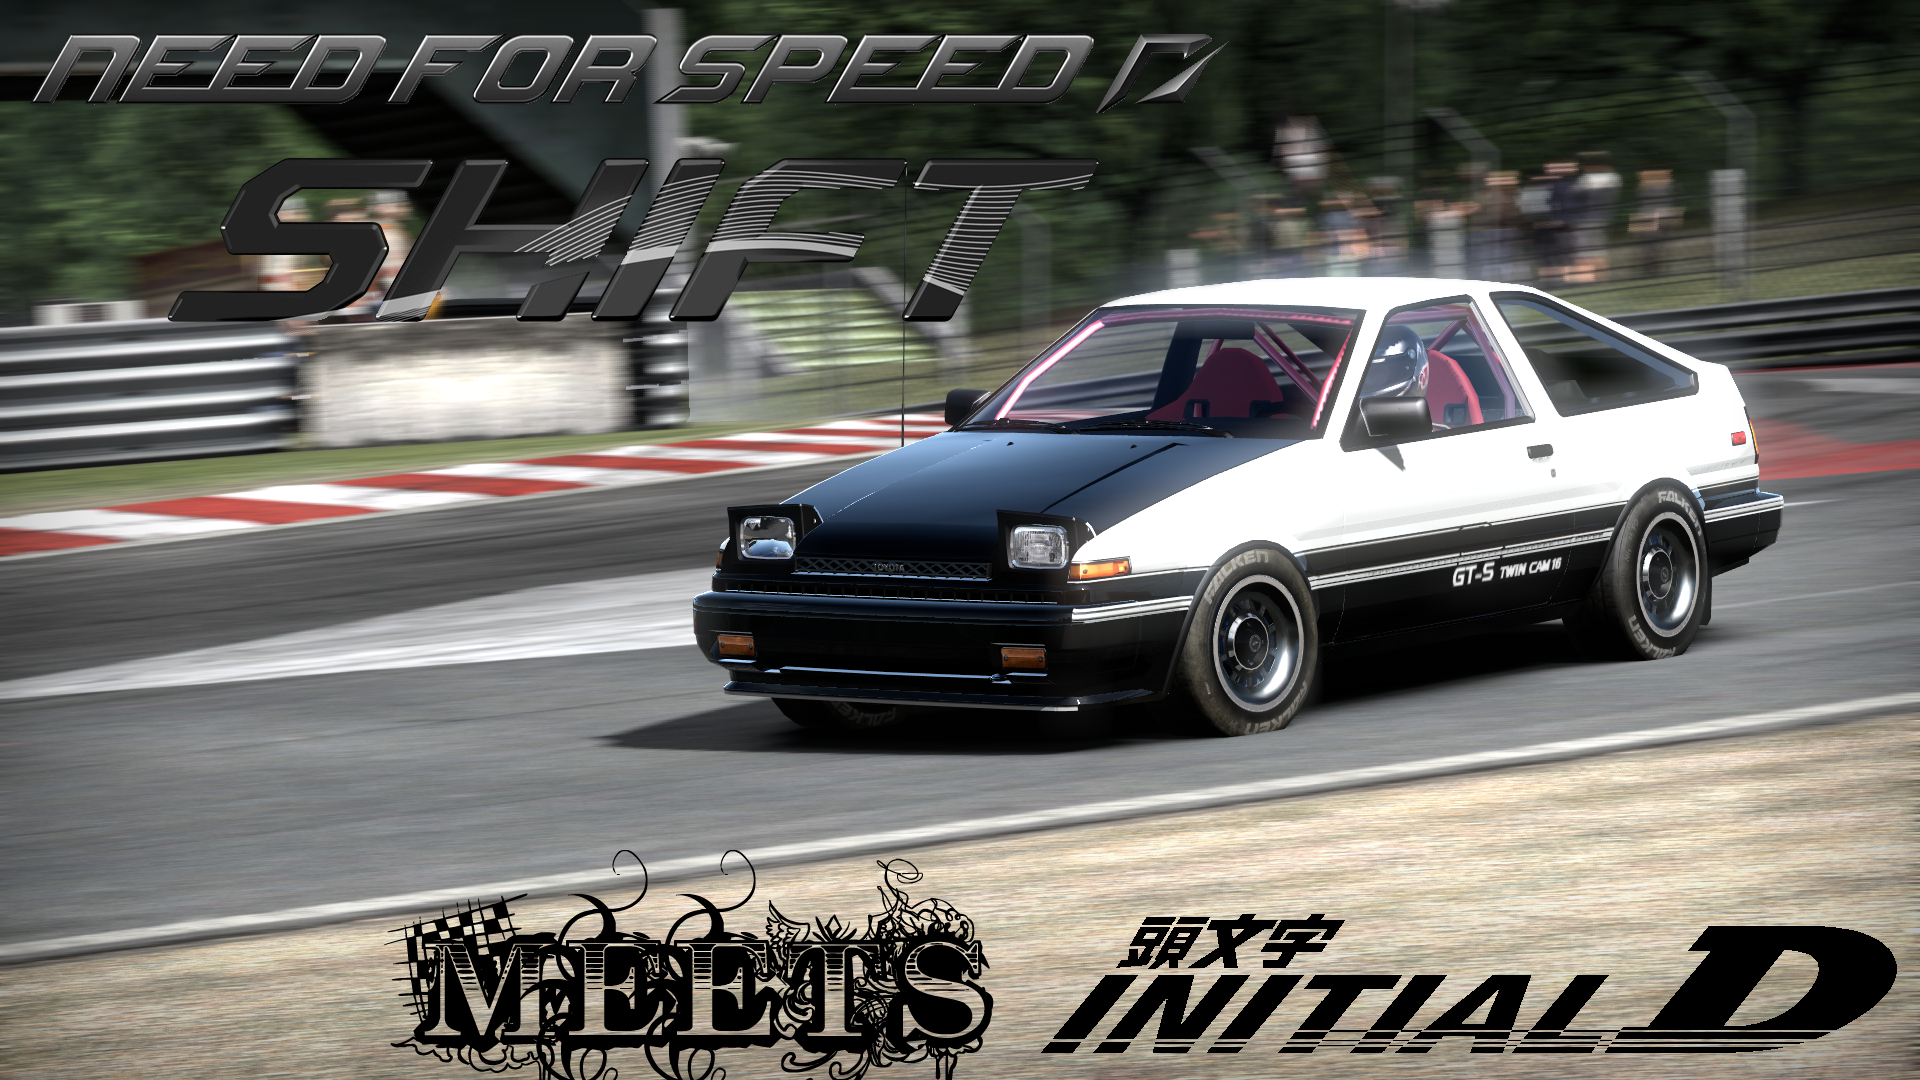 Initial D Ae86 HD Walls Find Wallpapers 1920x1080